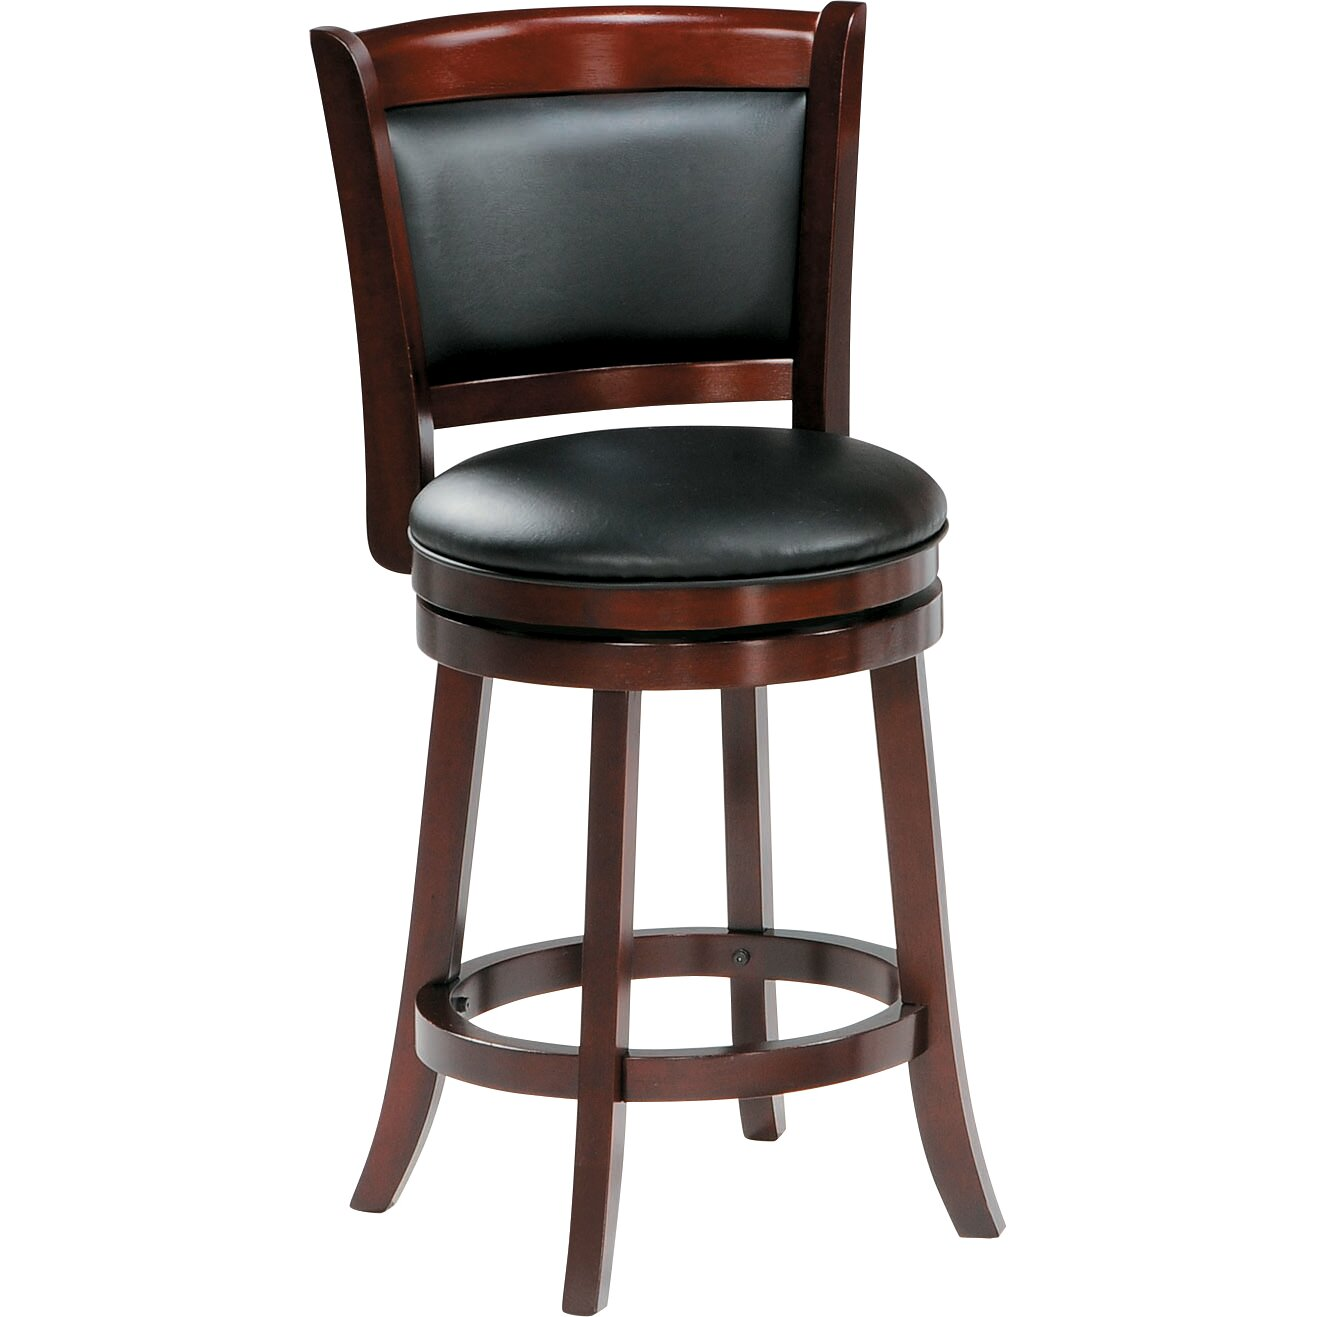 Woodhaven hill 24 swivel bar stool reviews wayfair for 24 bar stools